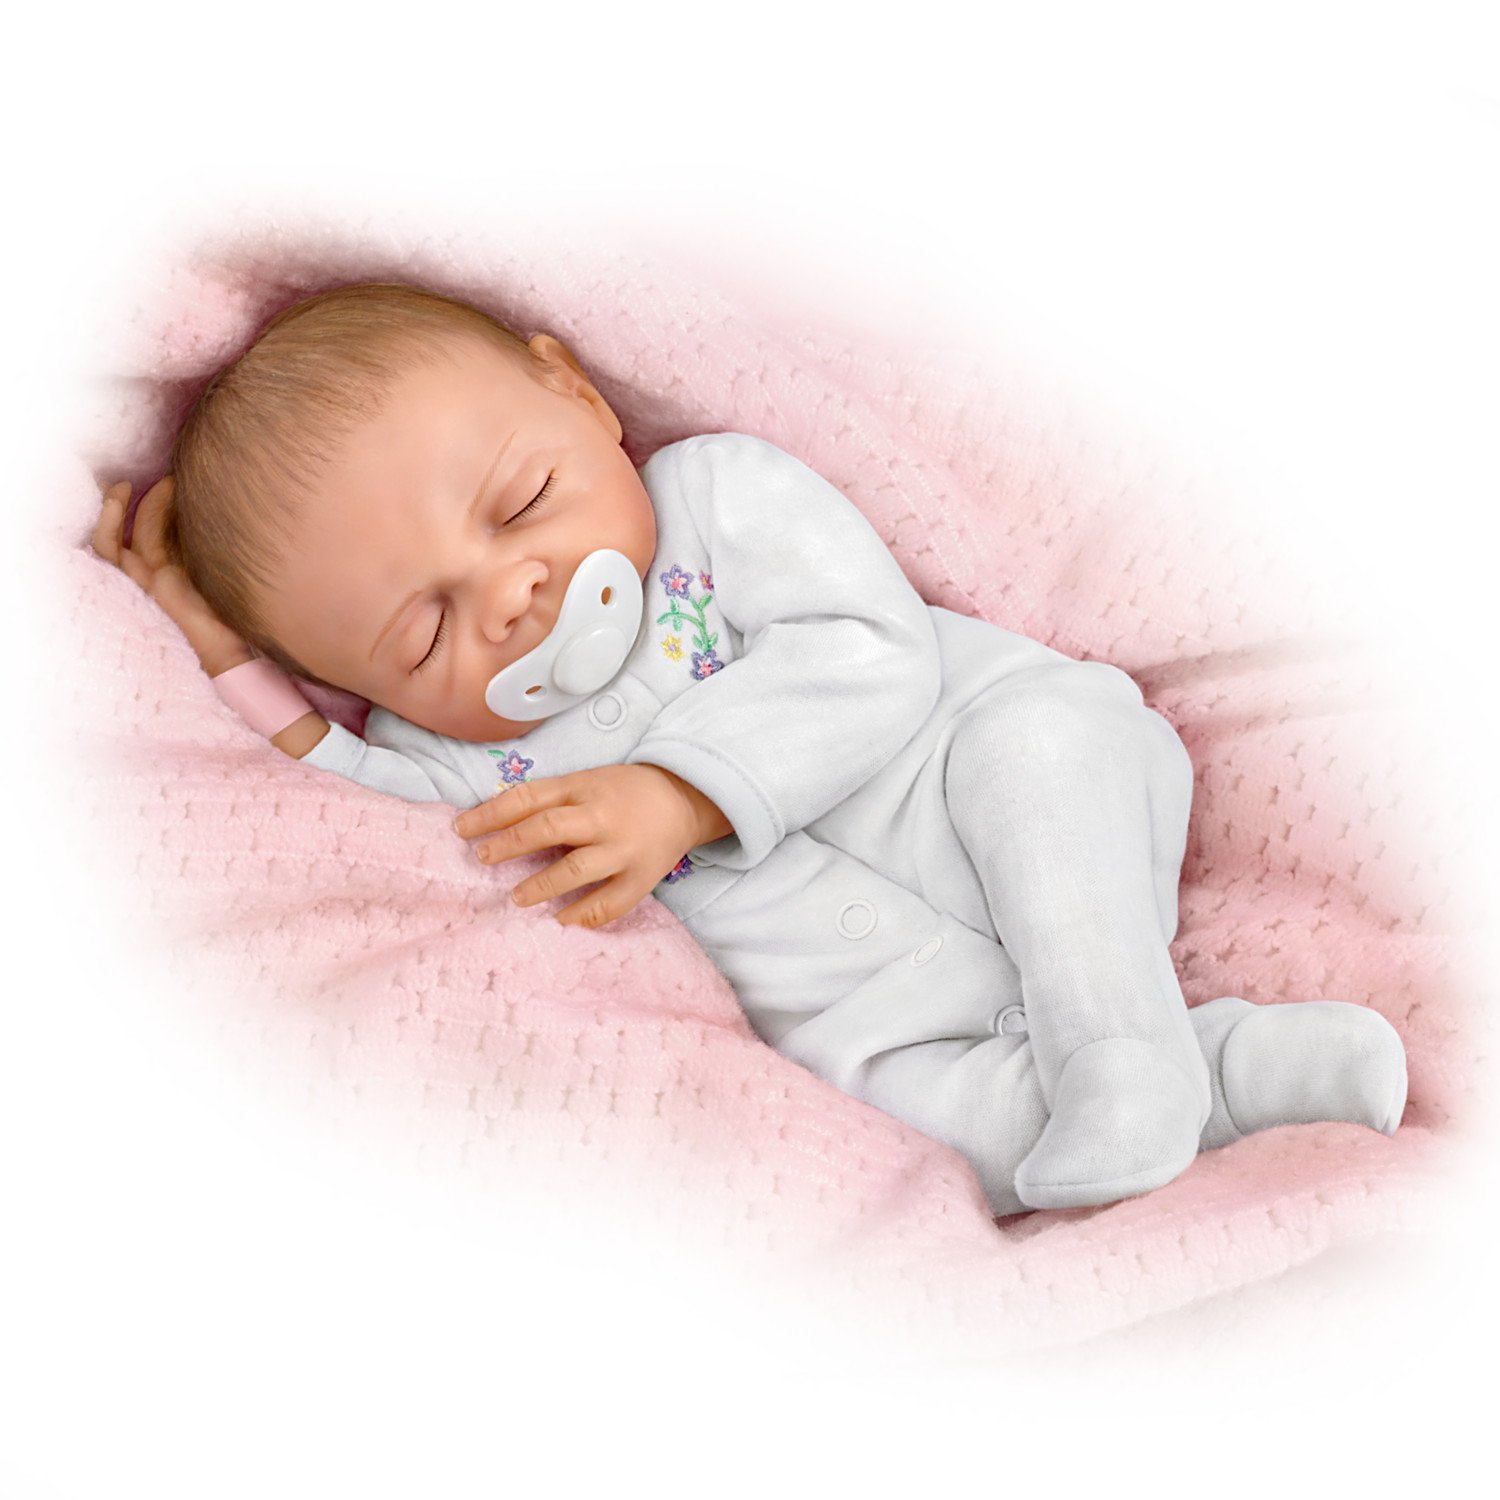 Realistic Newborn Baby Doll 18-inches by The Ashton-Drake Galleries